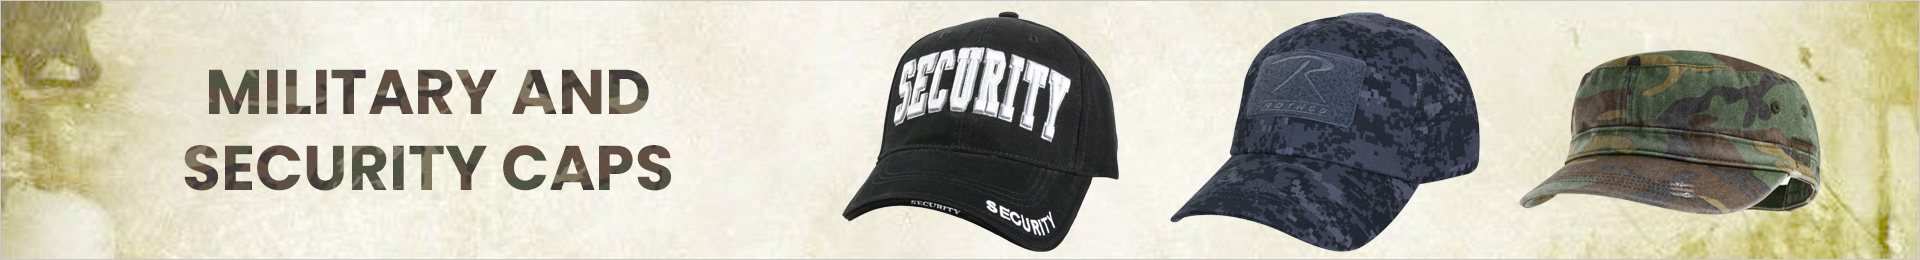 5a6ffe012e28b Wholesale Military and Security Caps